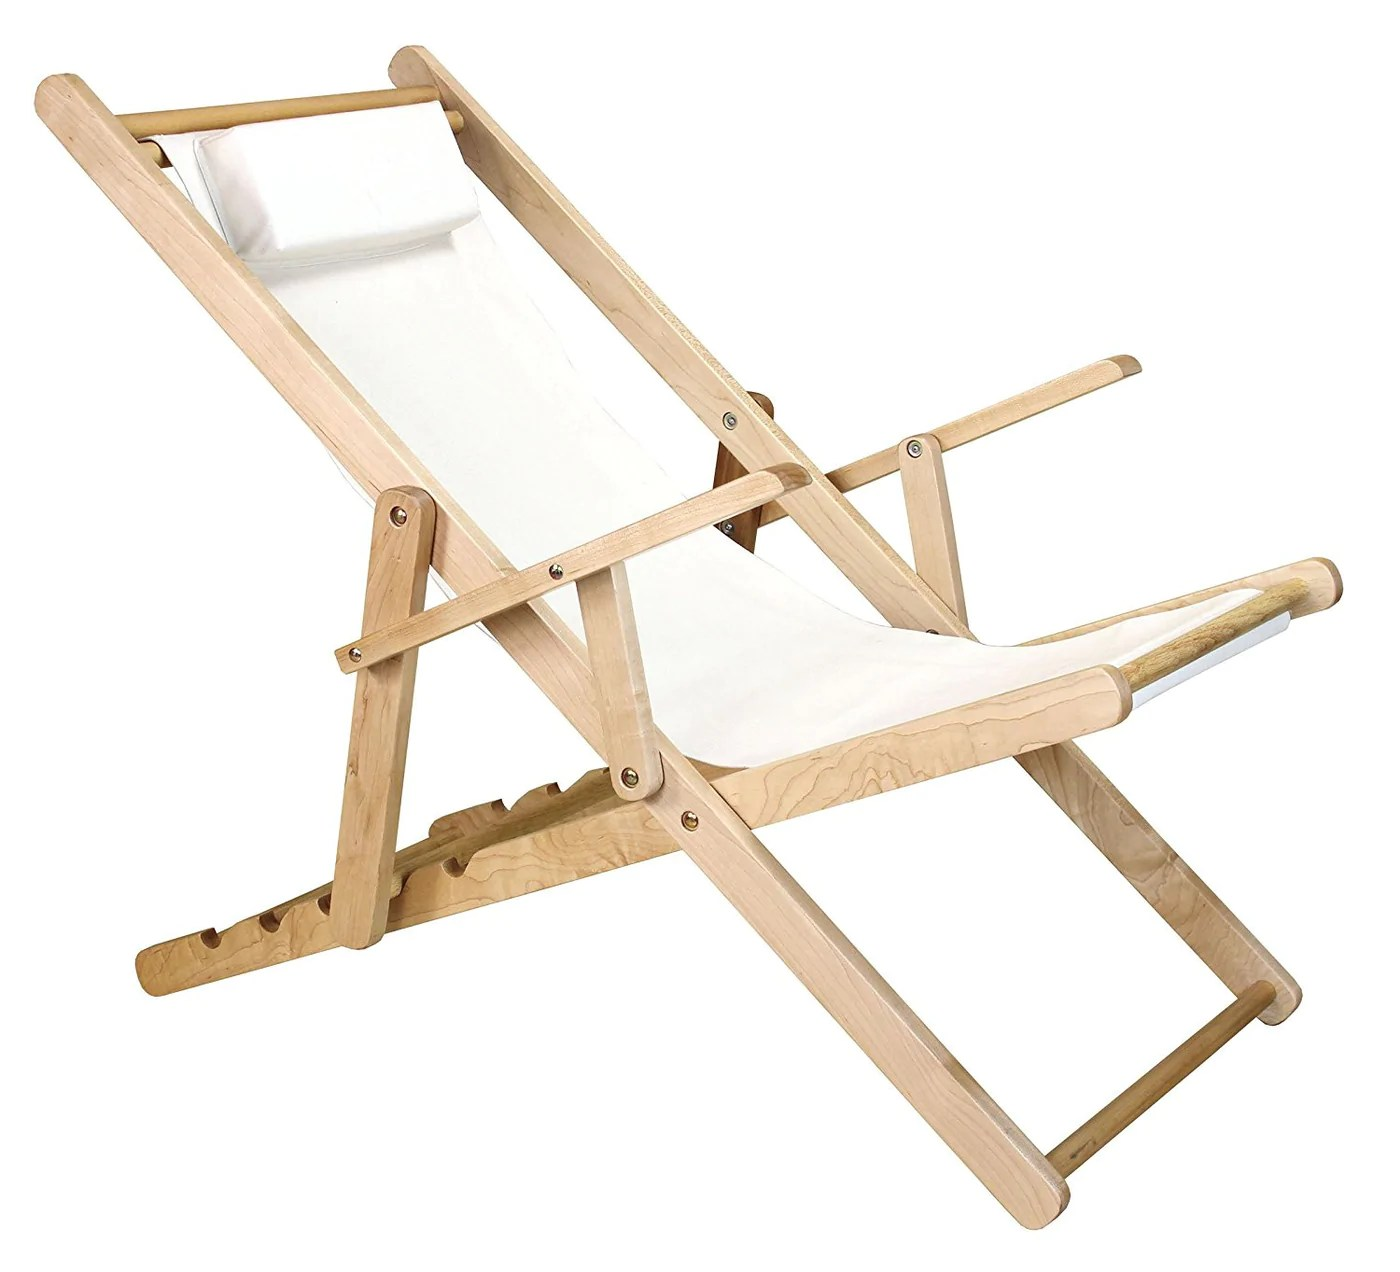 canvas sling chair creeper that turns into a casual home natural frame red 114 00 011 11